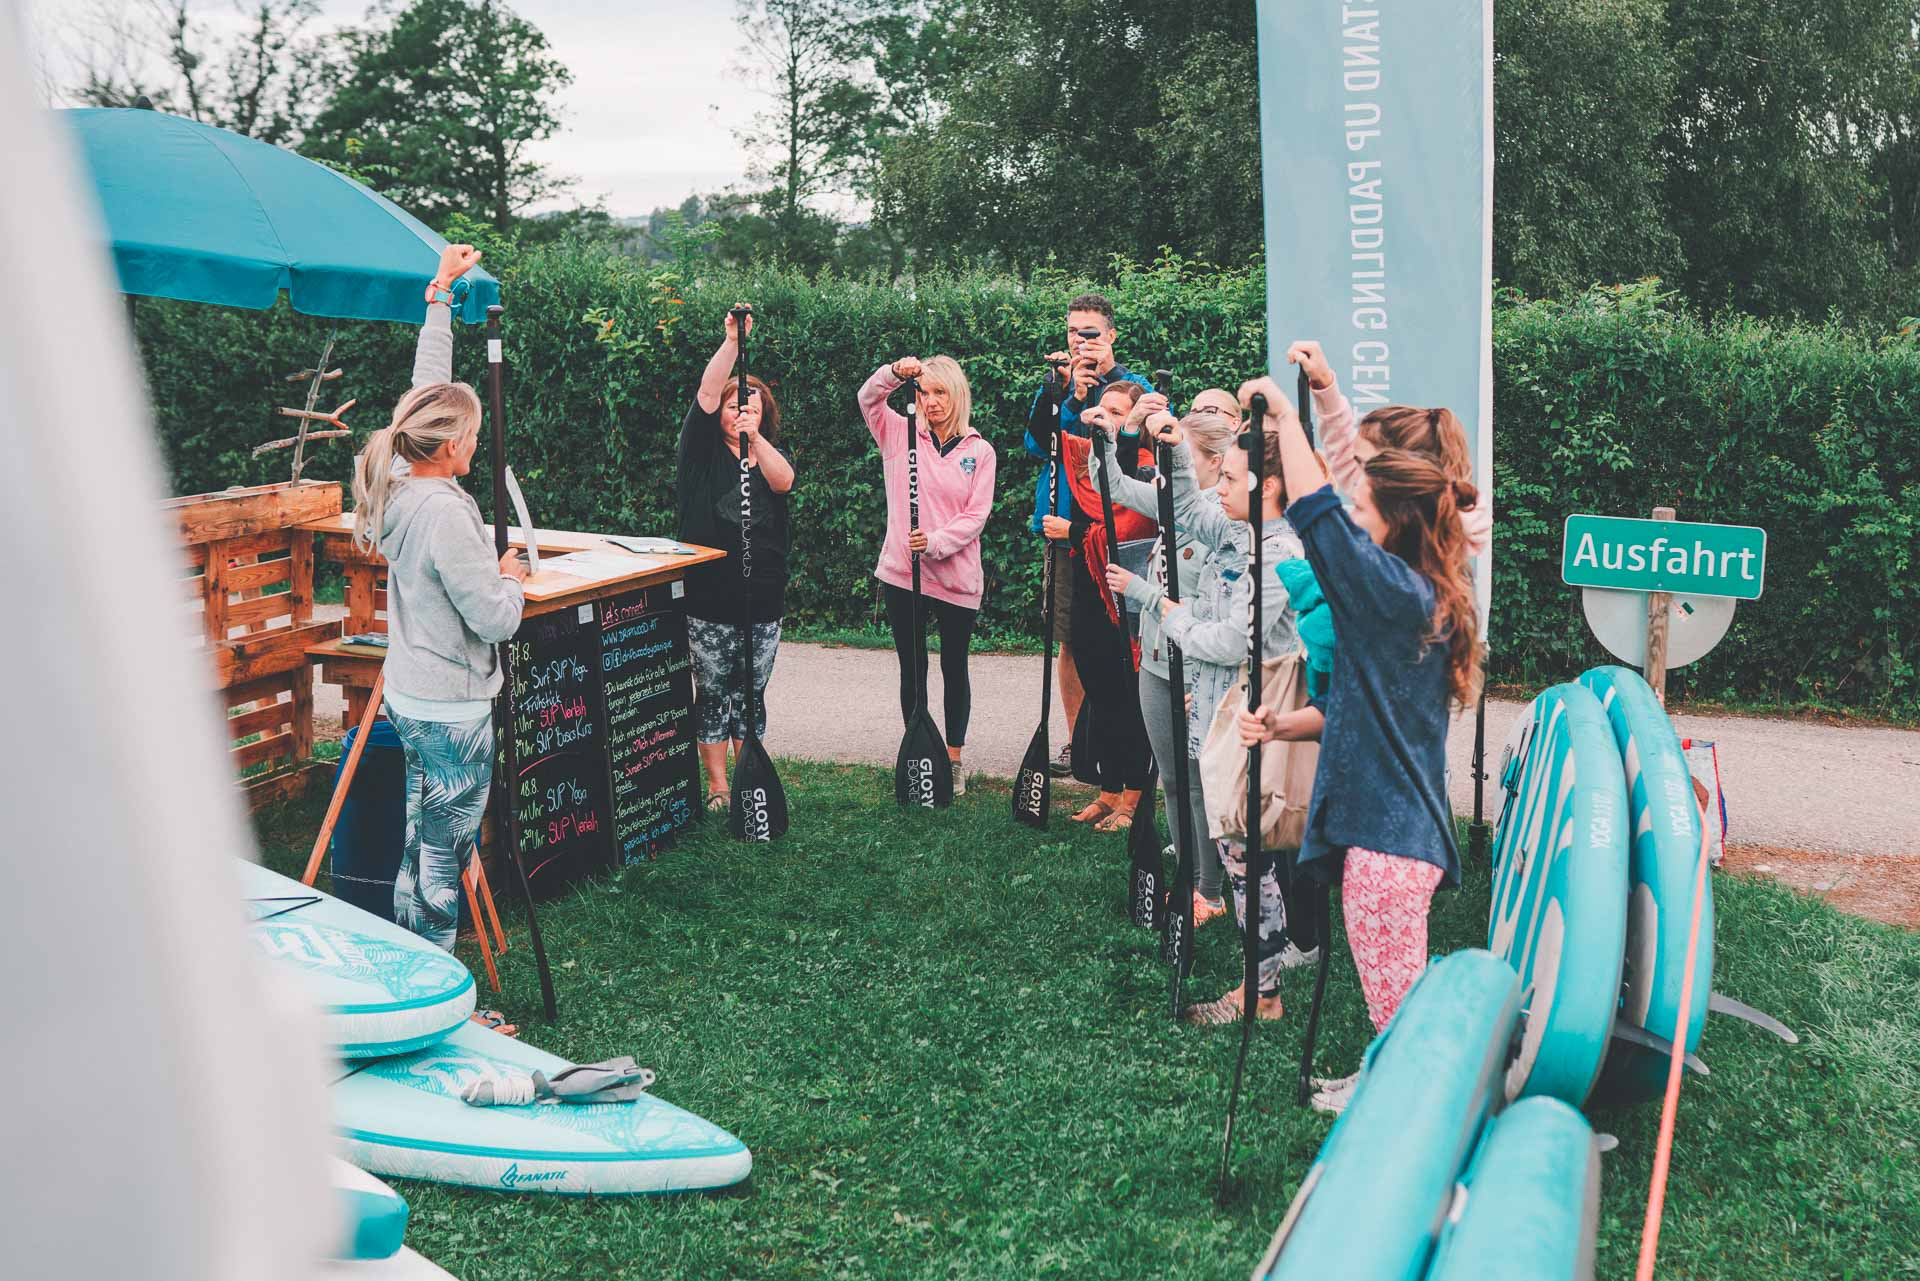 SUP Surf Yoga Breakfast Mattsee Austria